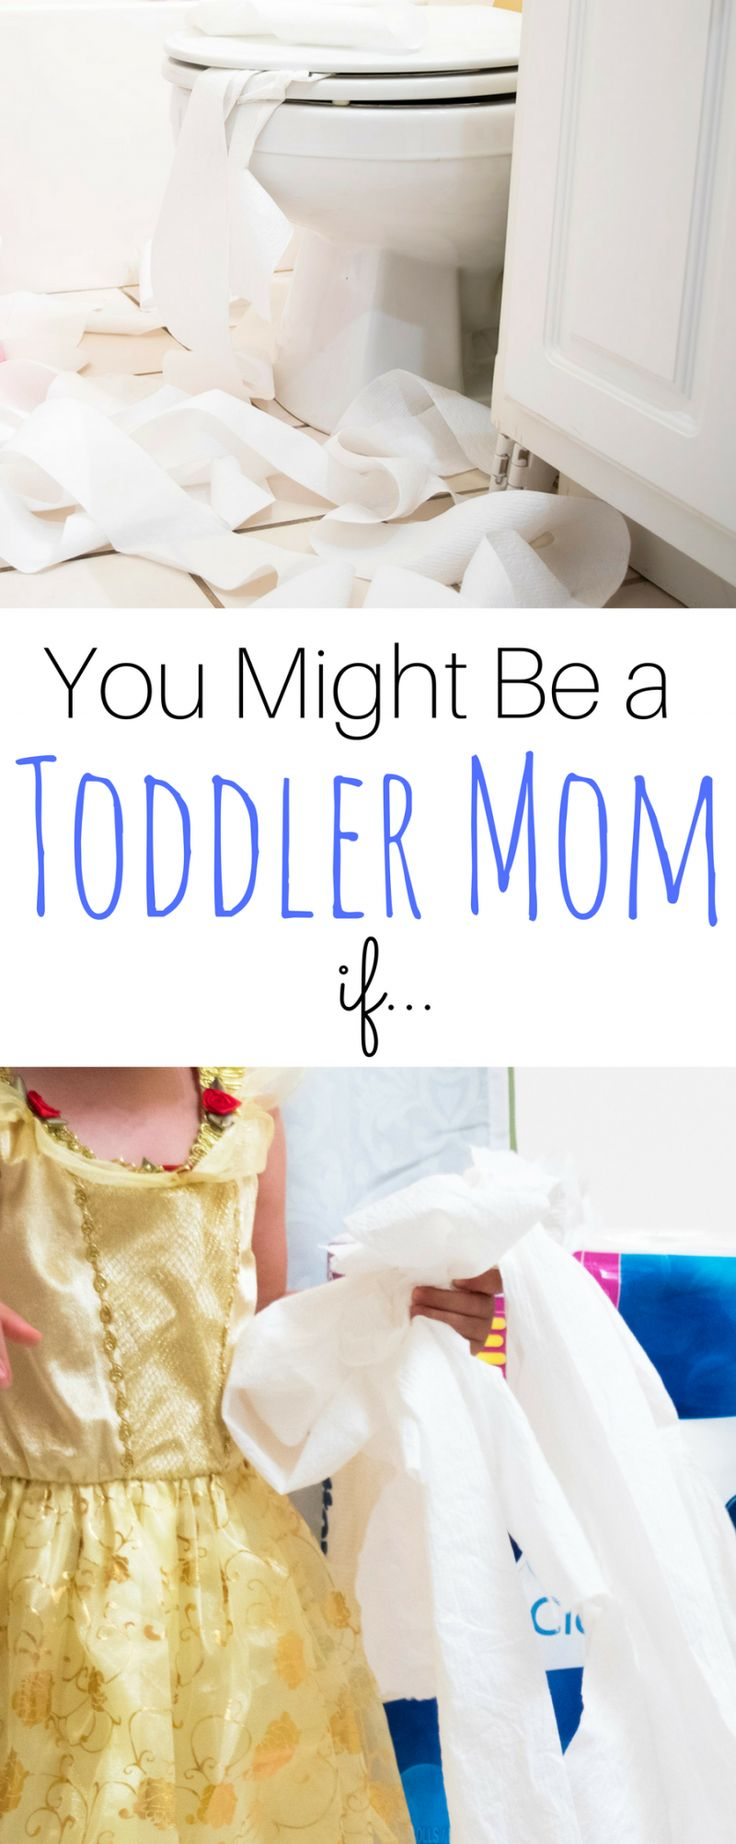 Toddler | Toddlers | Toddler Life | Toddler Mom | Toddler Tips | Raising Toddlers | Motherhood | Mom | Mommy | Mother | Mama | Mum | Mummy | Mom of Toddlers | Parenting | Parenting Advice | Toilet Paper | Cottonelle | Wal-Mart